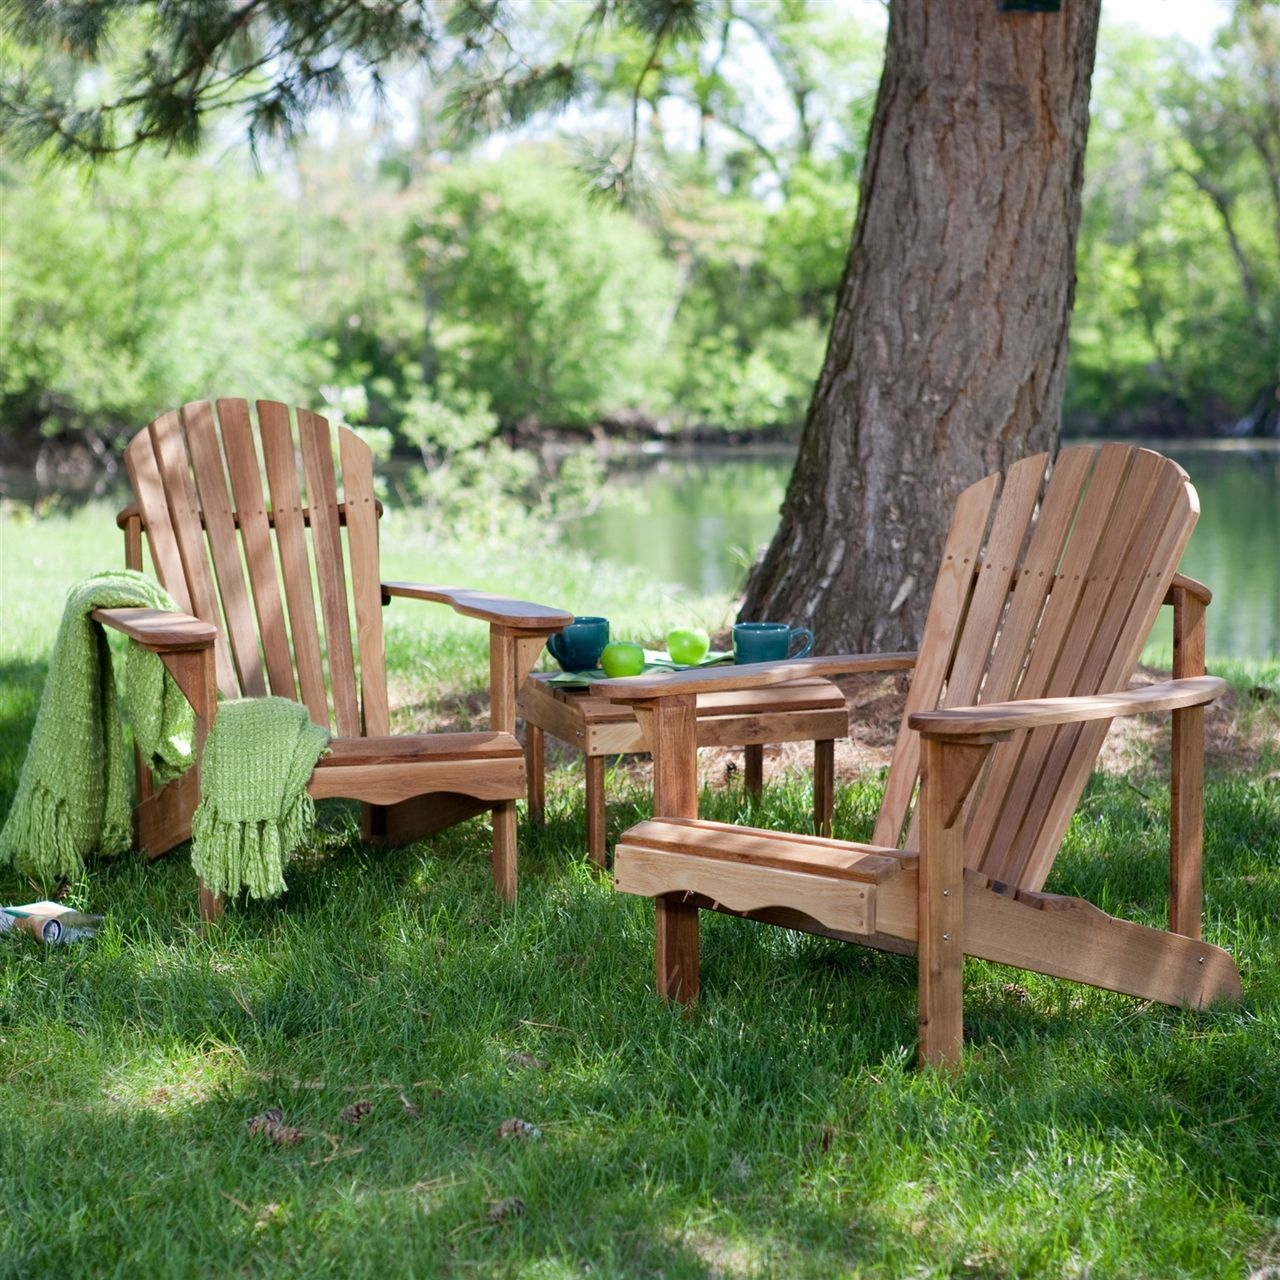 3-Piece Patio Set - 2 Oak Adirondack Chairs and Matching Side Table